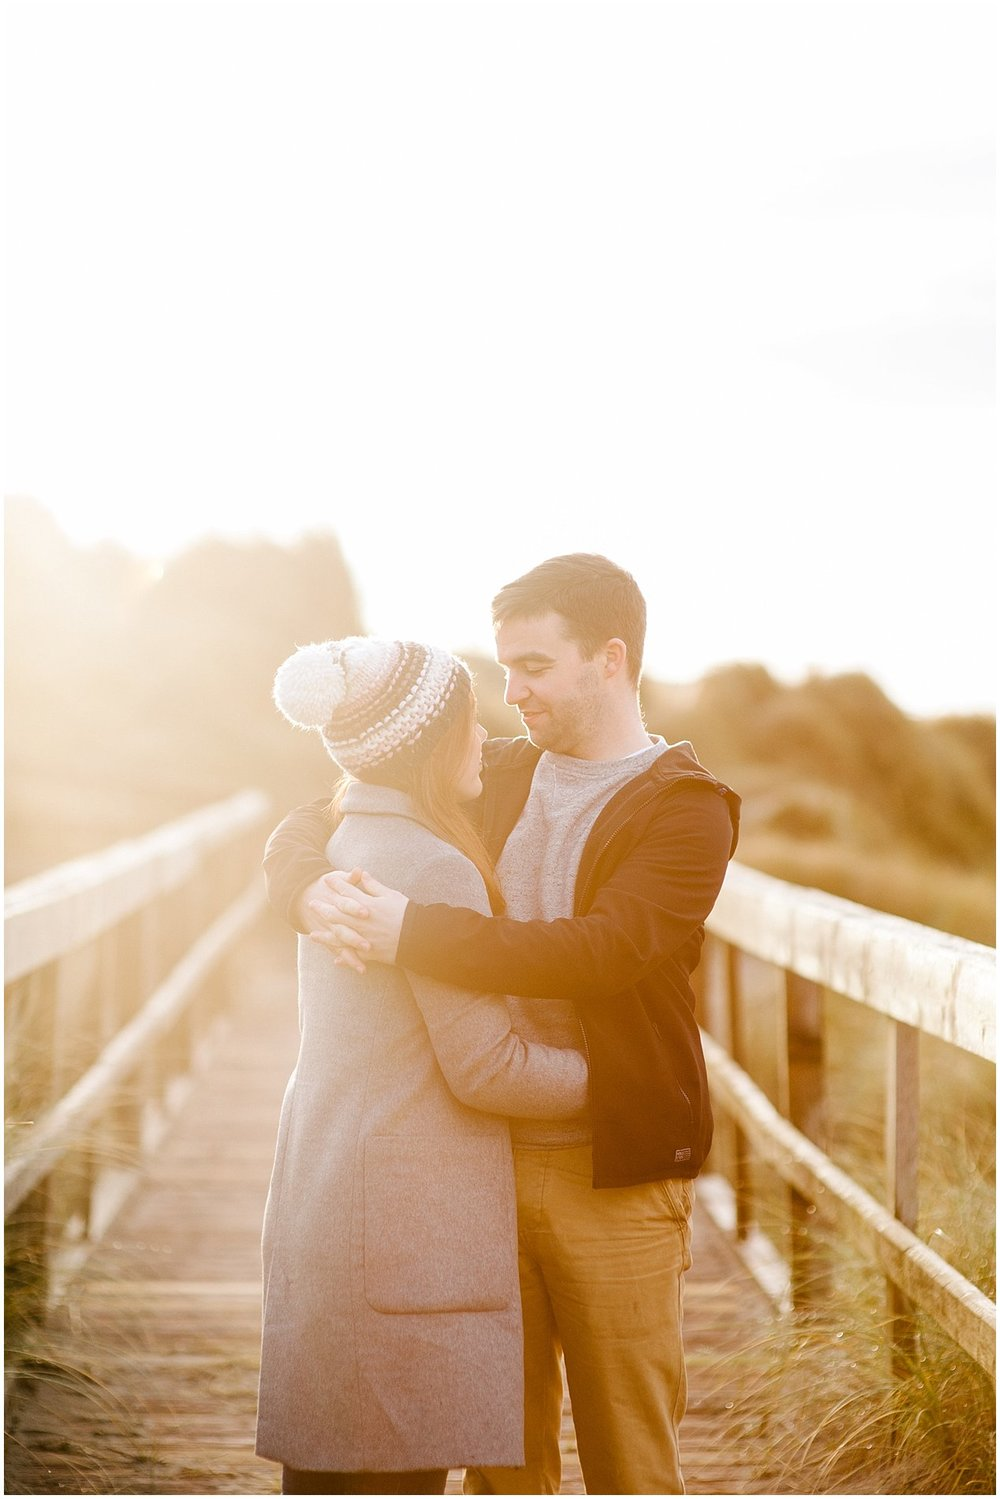 Sinead_Emmet_Rossnowlagh_Beach_pre_wedding_jude_browne_photography_0013.jpg